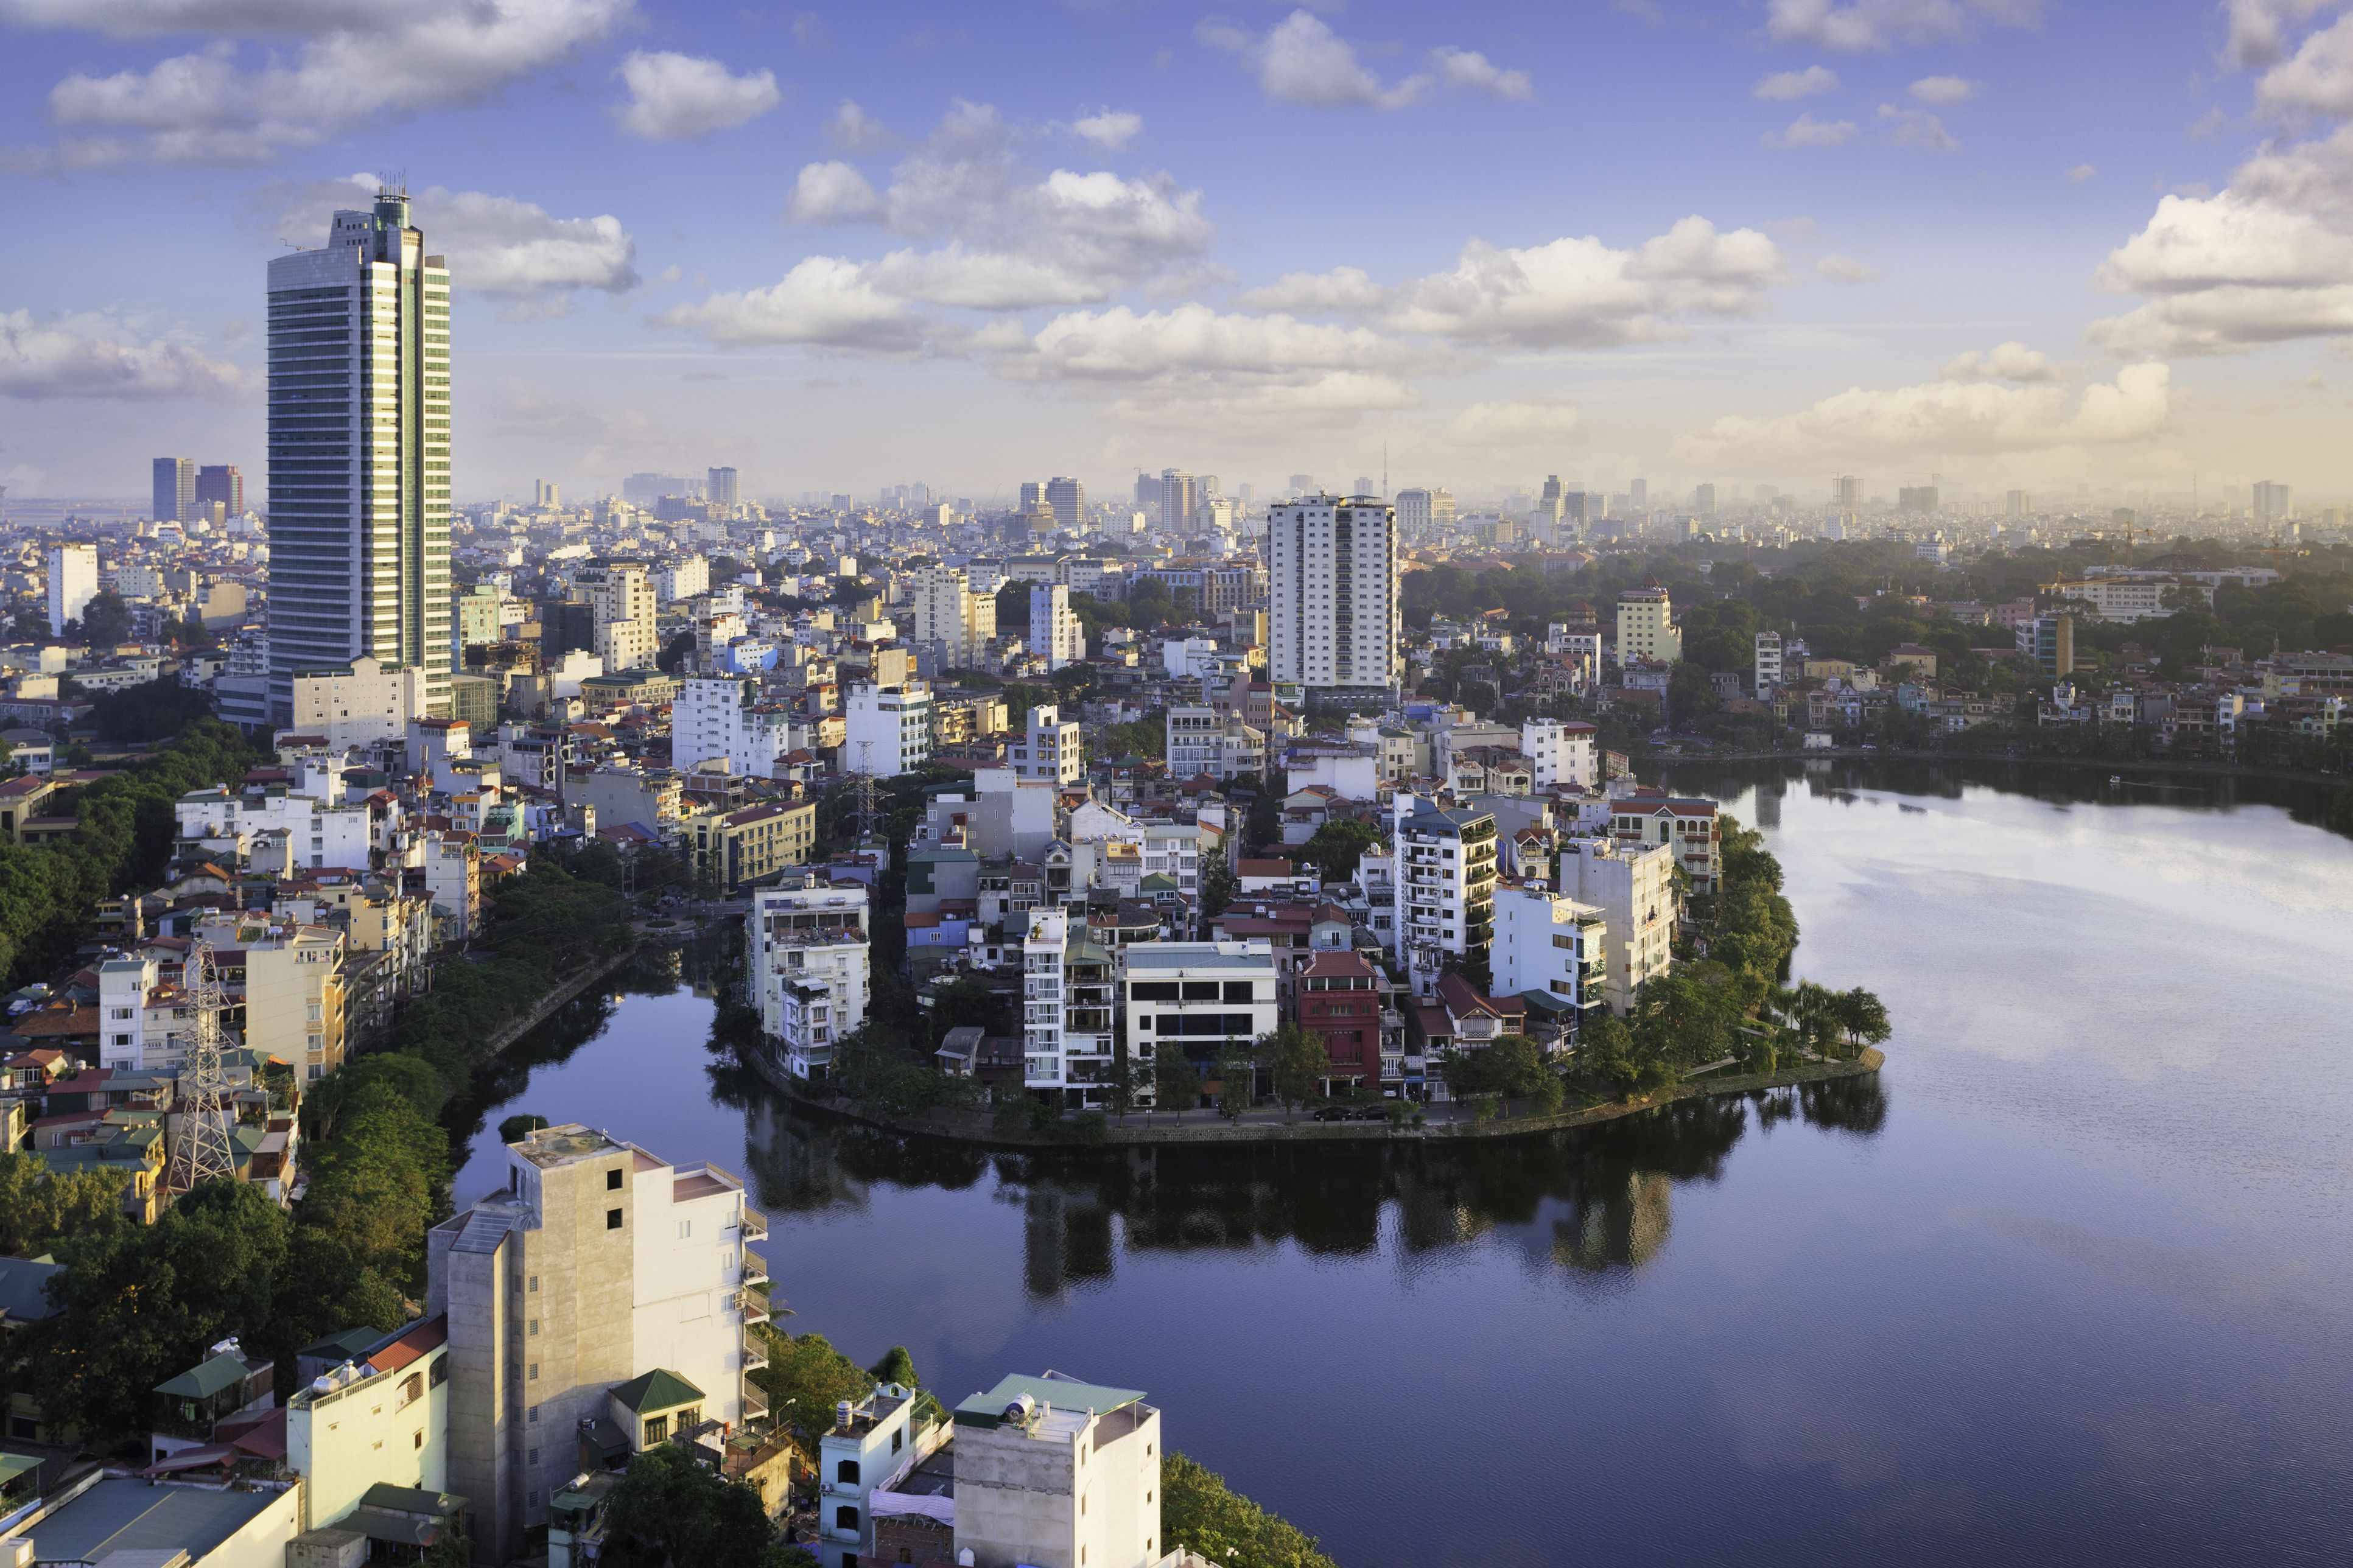 How To Get From Ho Chi Minh City To Hanoi